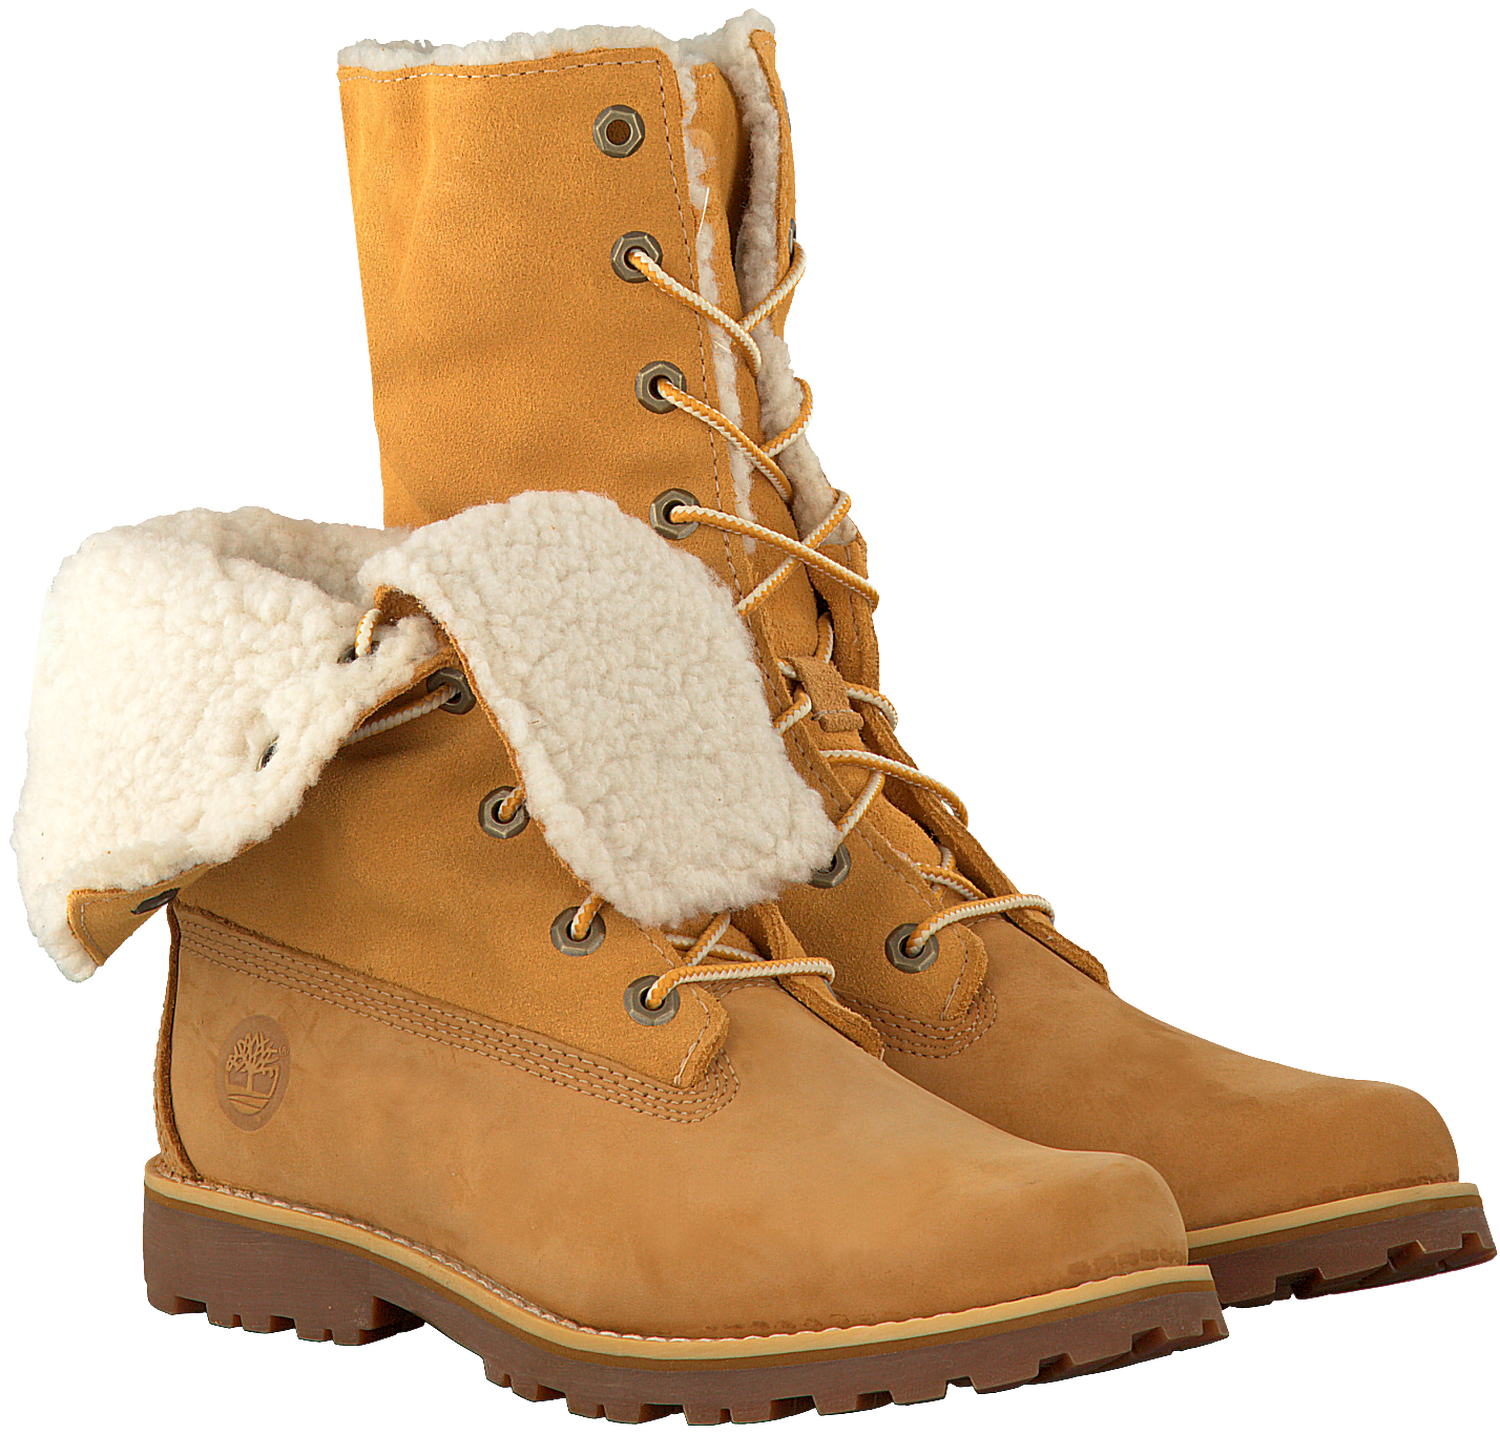 Timberland Boots 6IN WP SHEARLING BOOT Camel